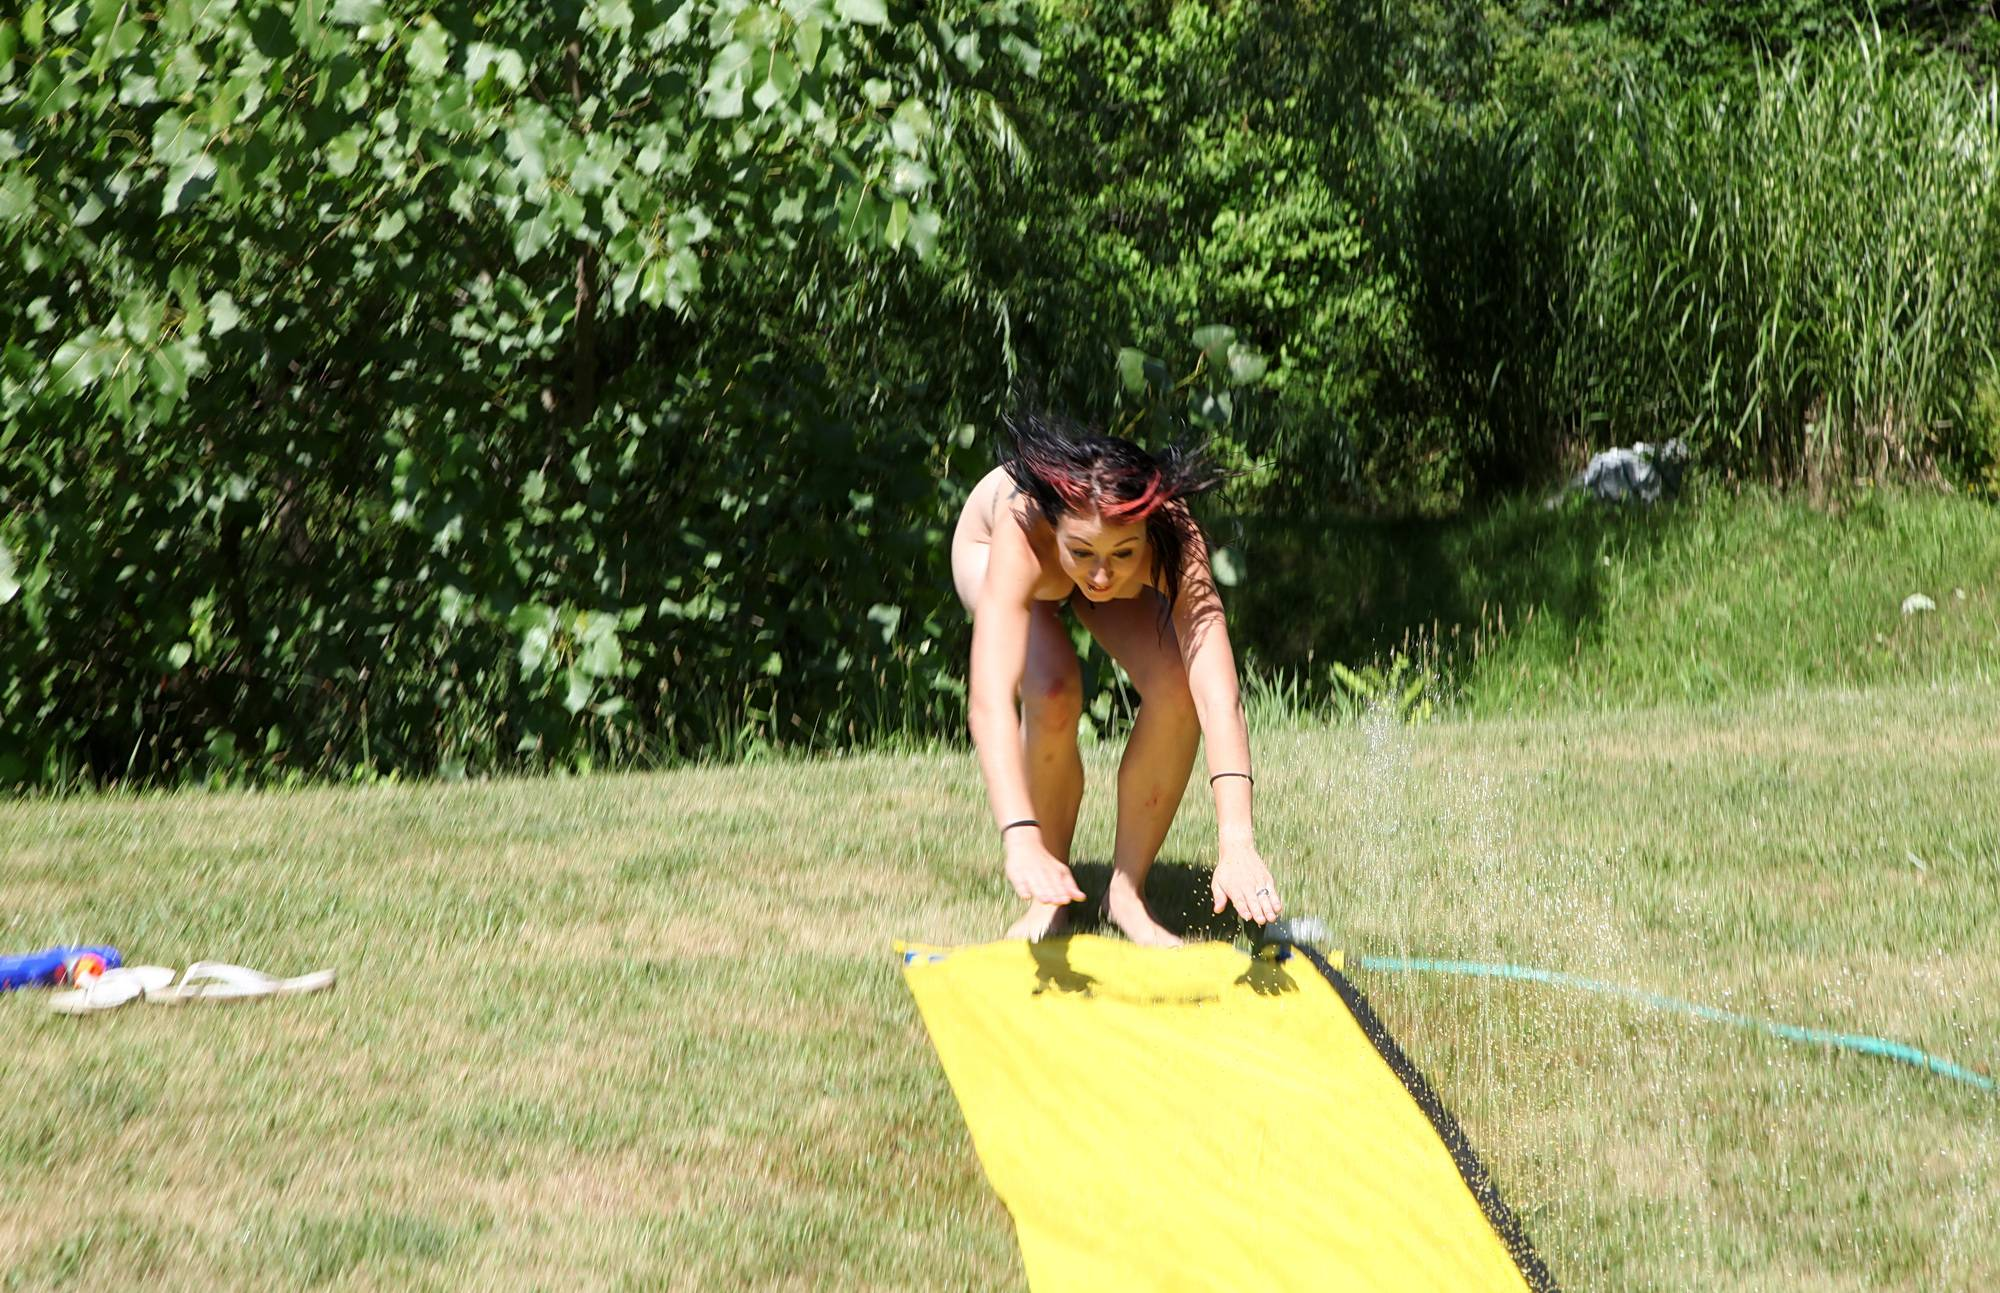 Nudist Pics Amazing Slip n Slide Ride - 2